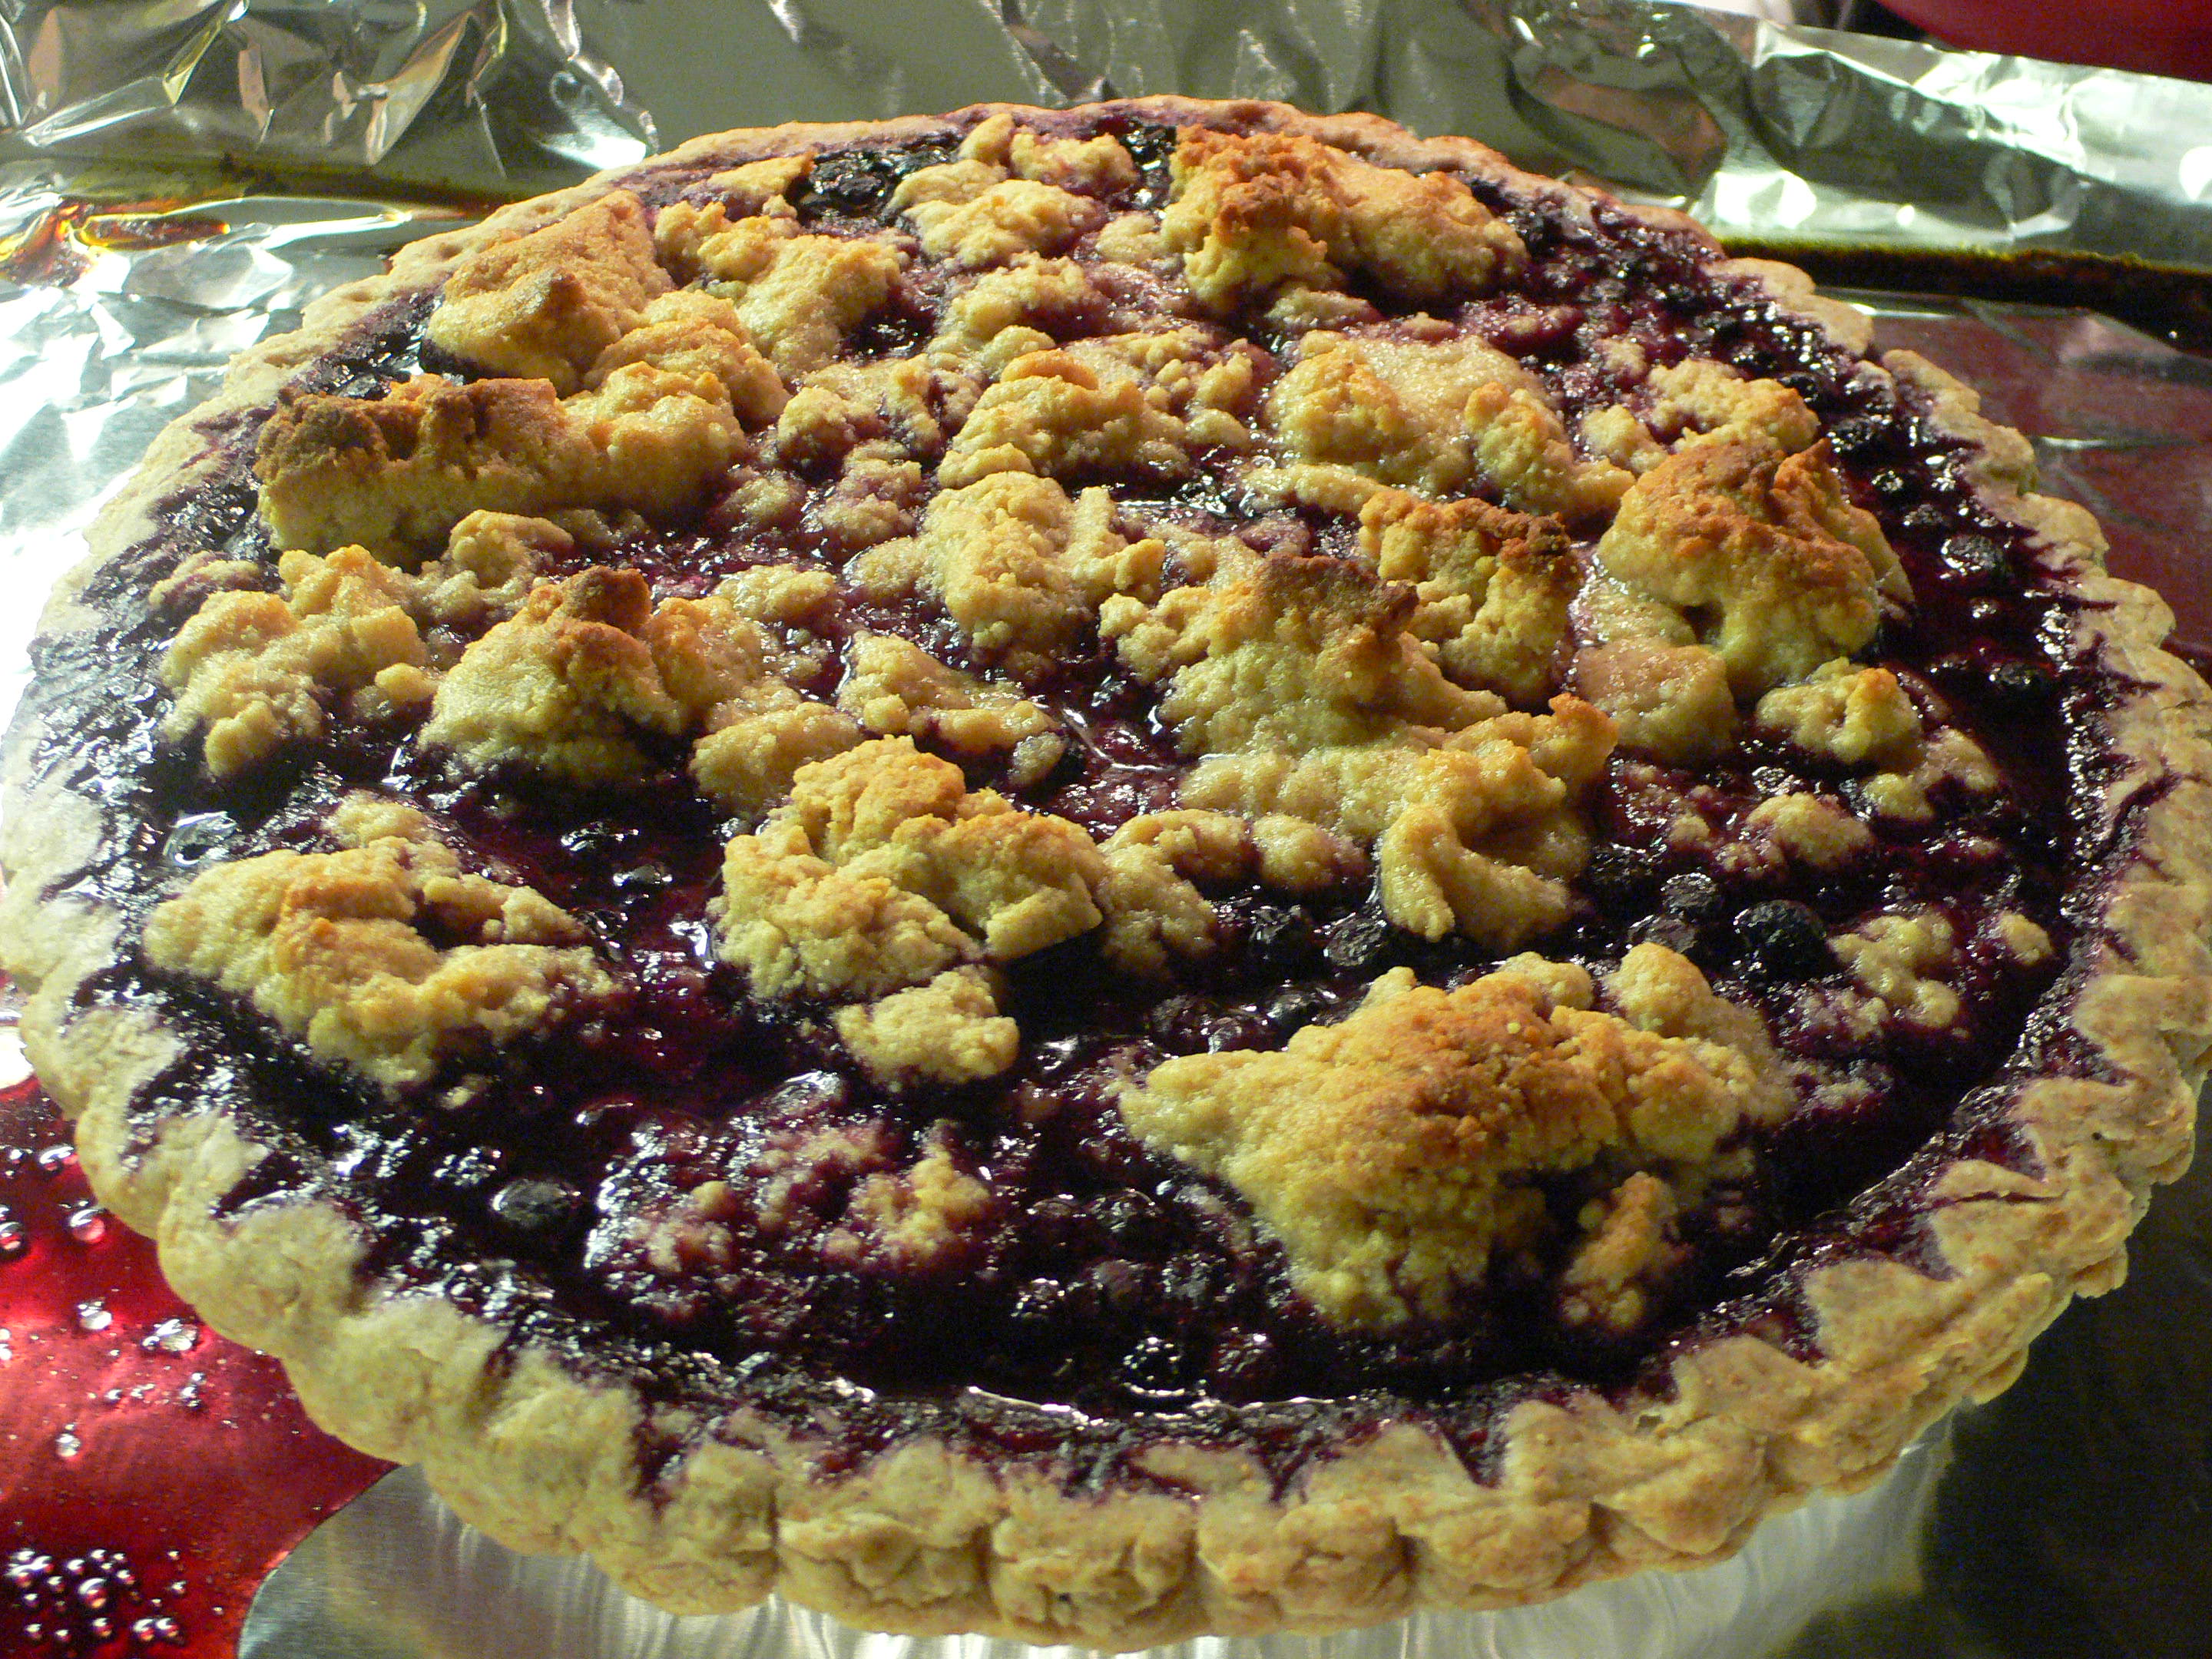 Blueberry_Pie_with_Almond_Crumb_Topping,_May_2009